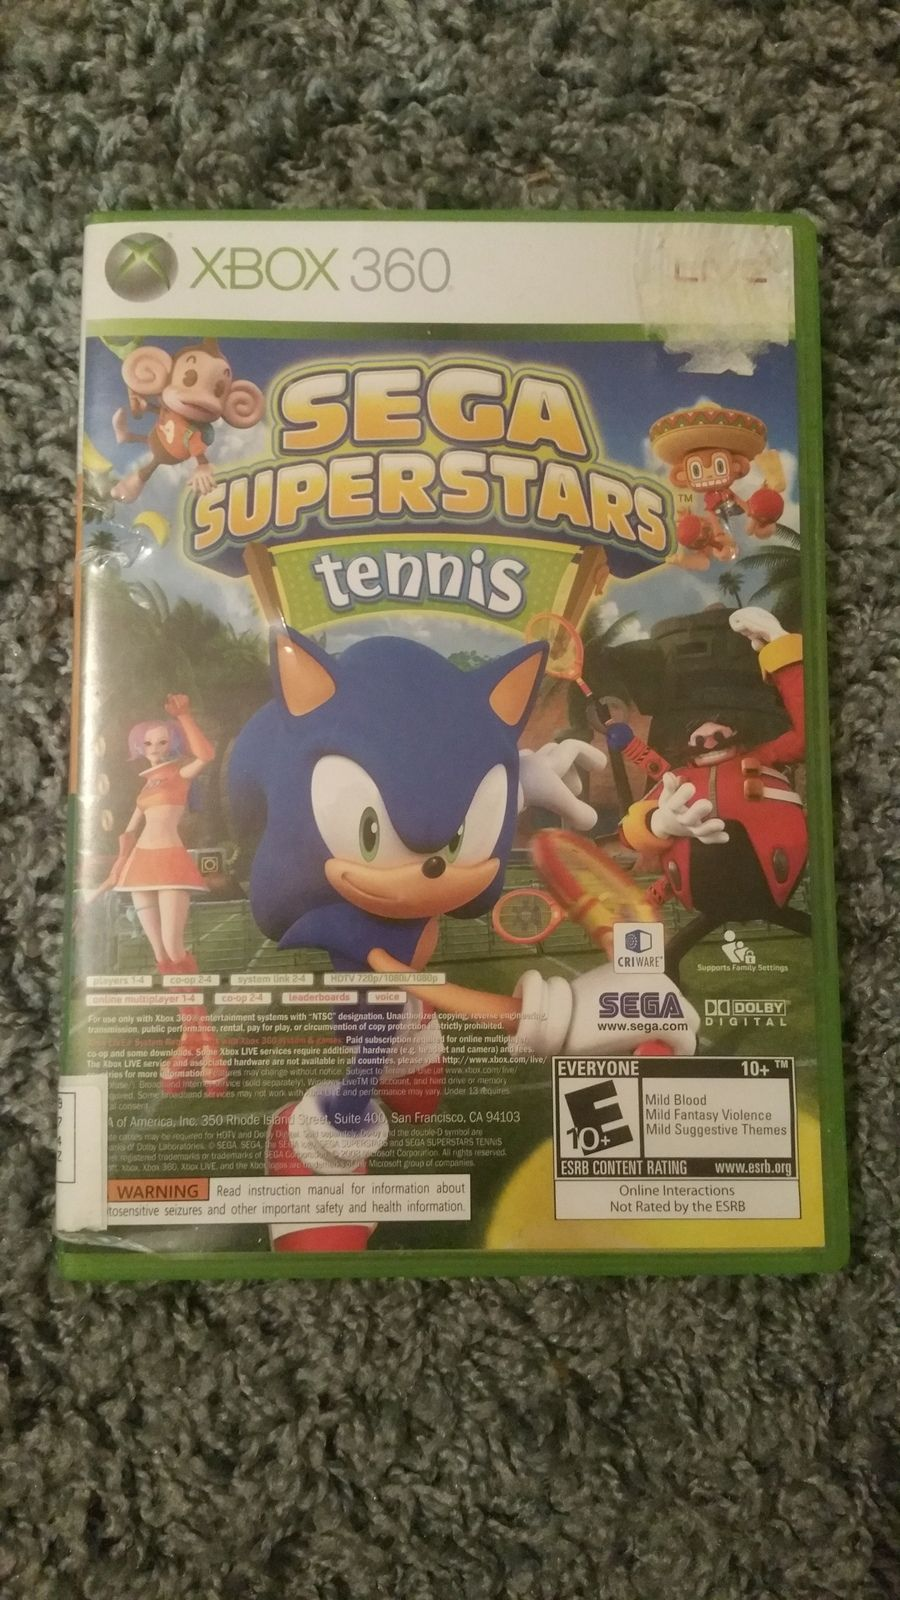 Sega Superstars Tennis Wii Game Complete Excellent Condition Sega Xbox Sega Video Games